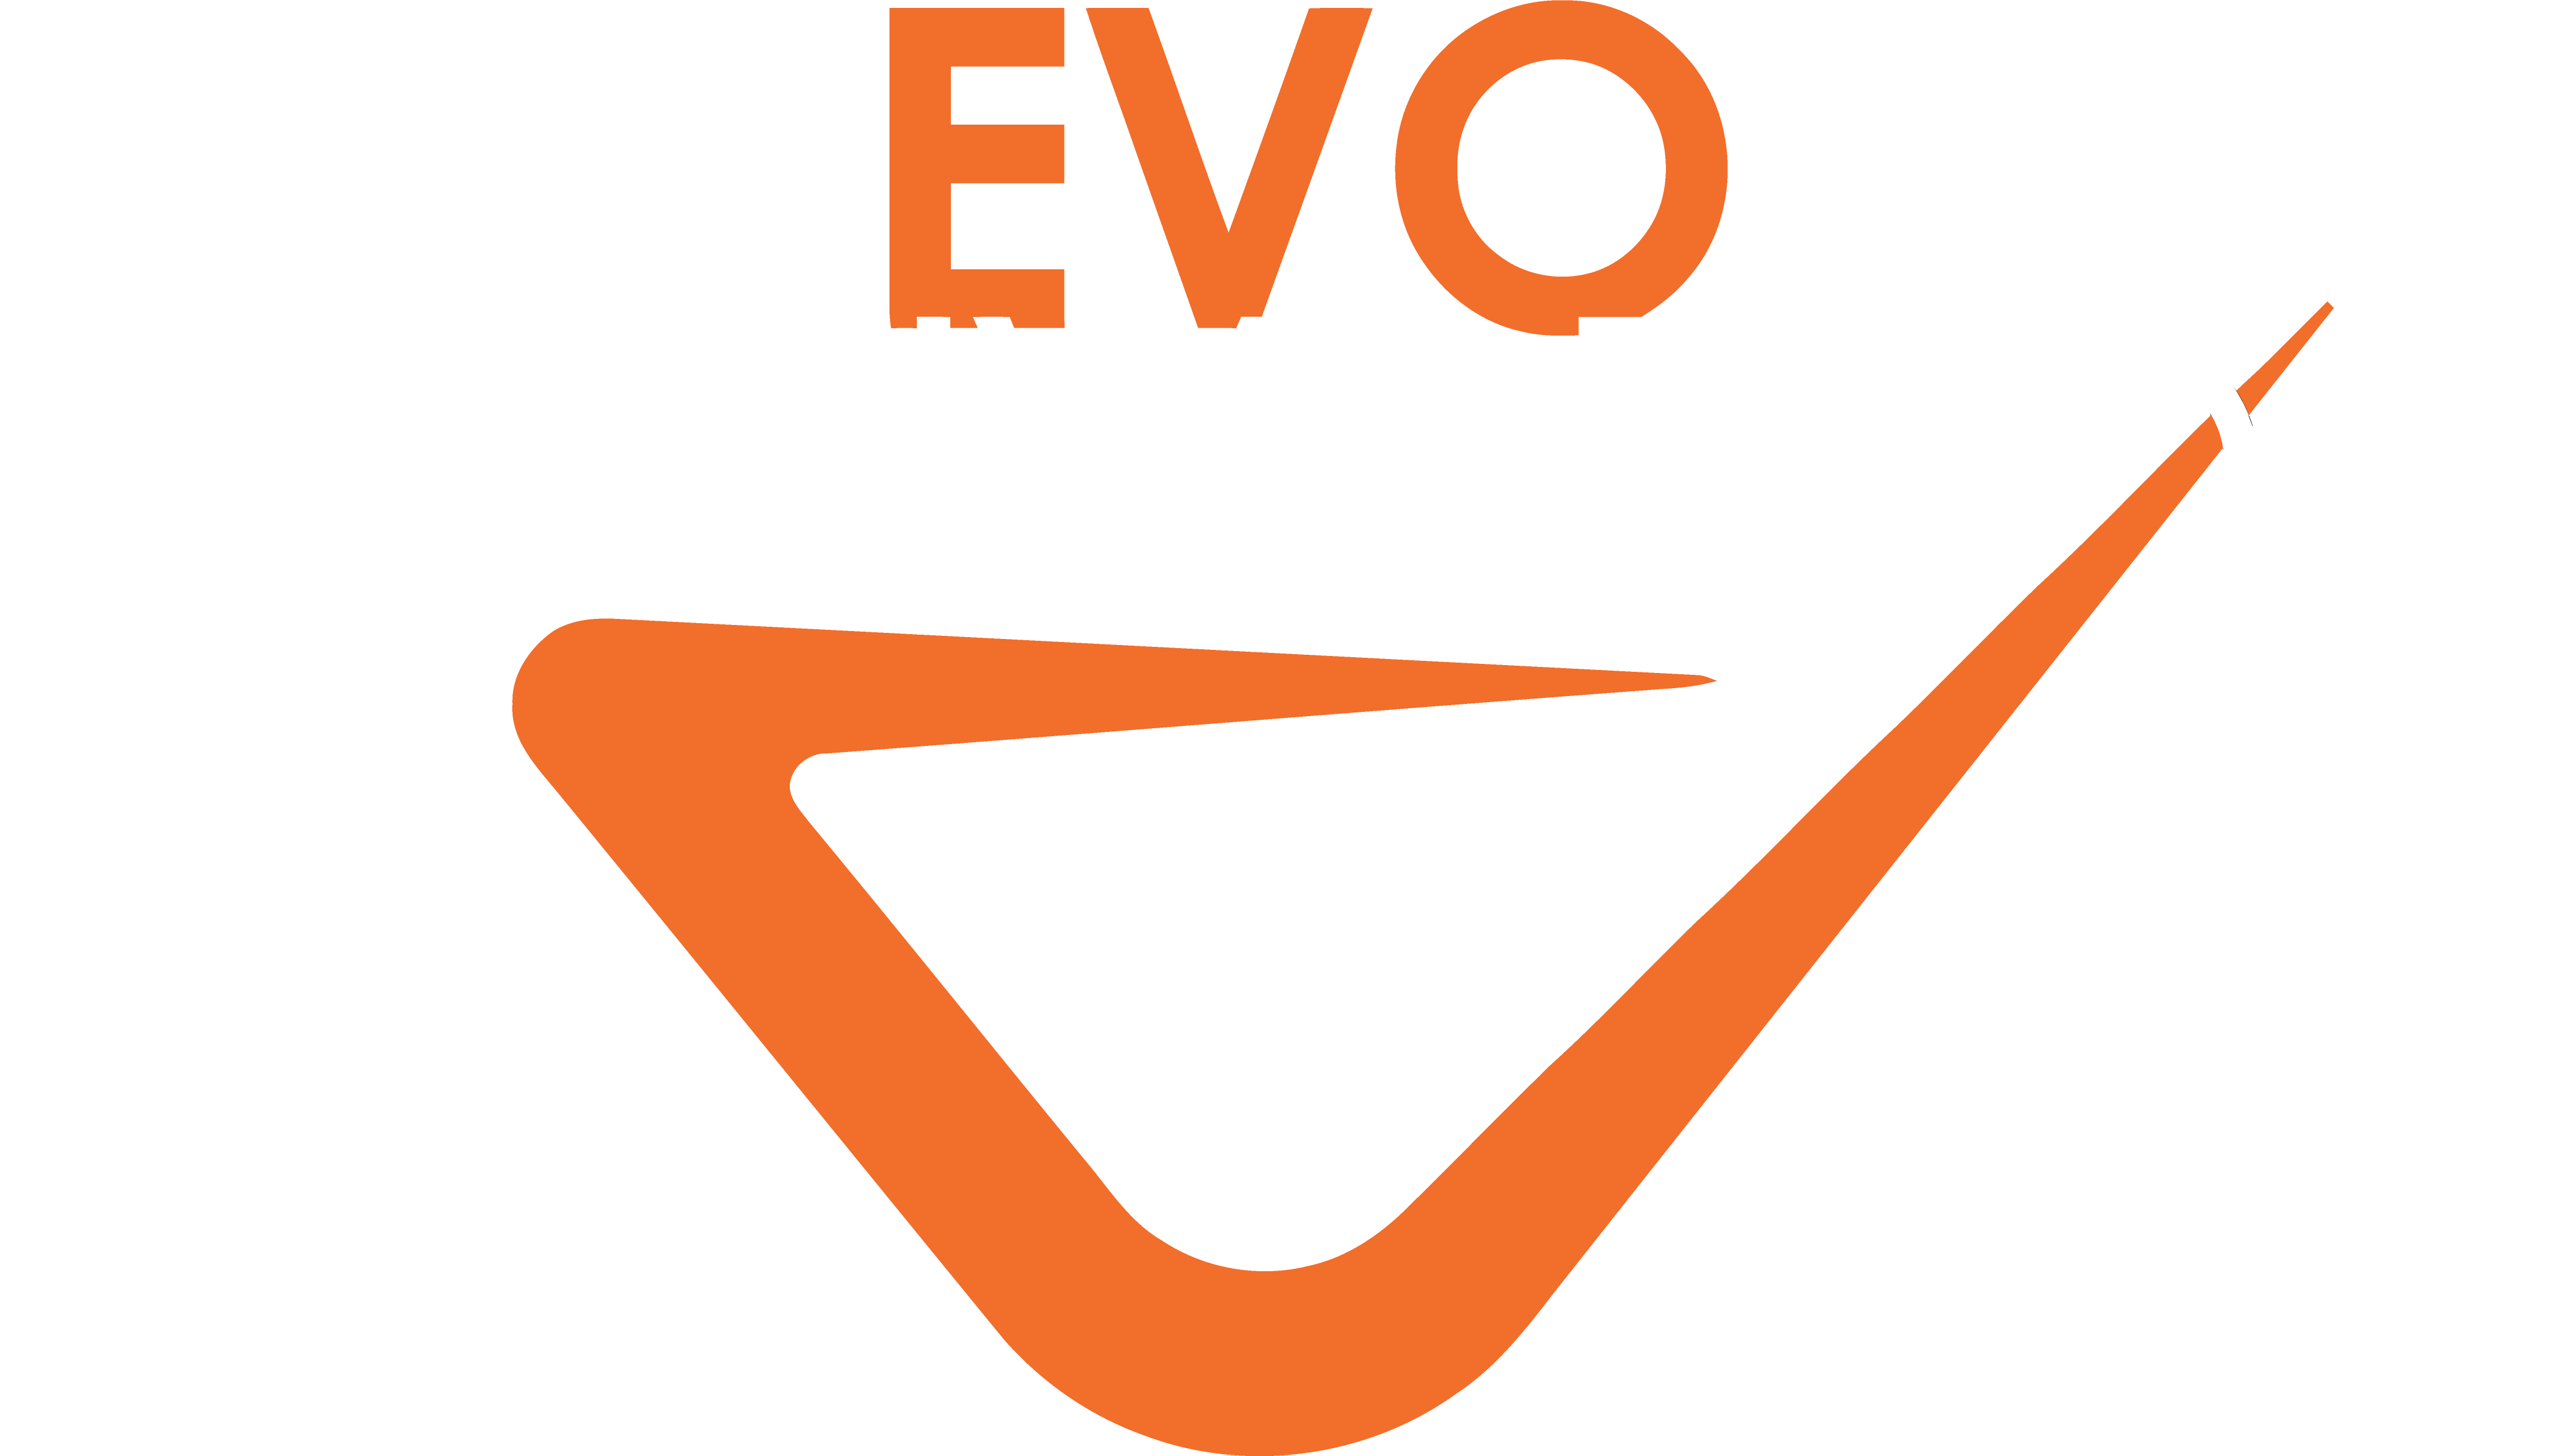 Evoactivation - English